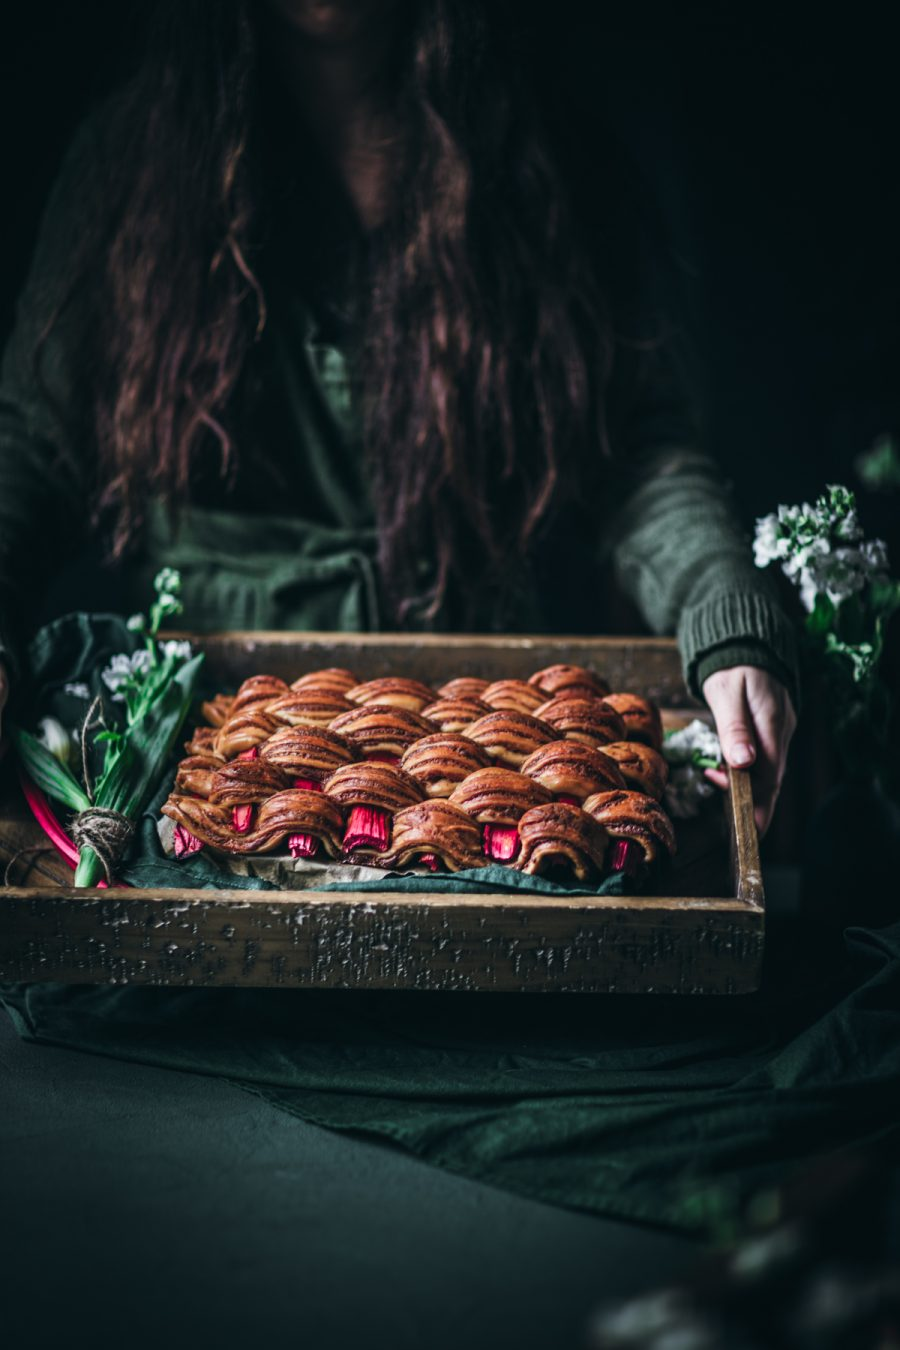 Rhubarb Braided Cinnamon Bread